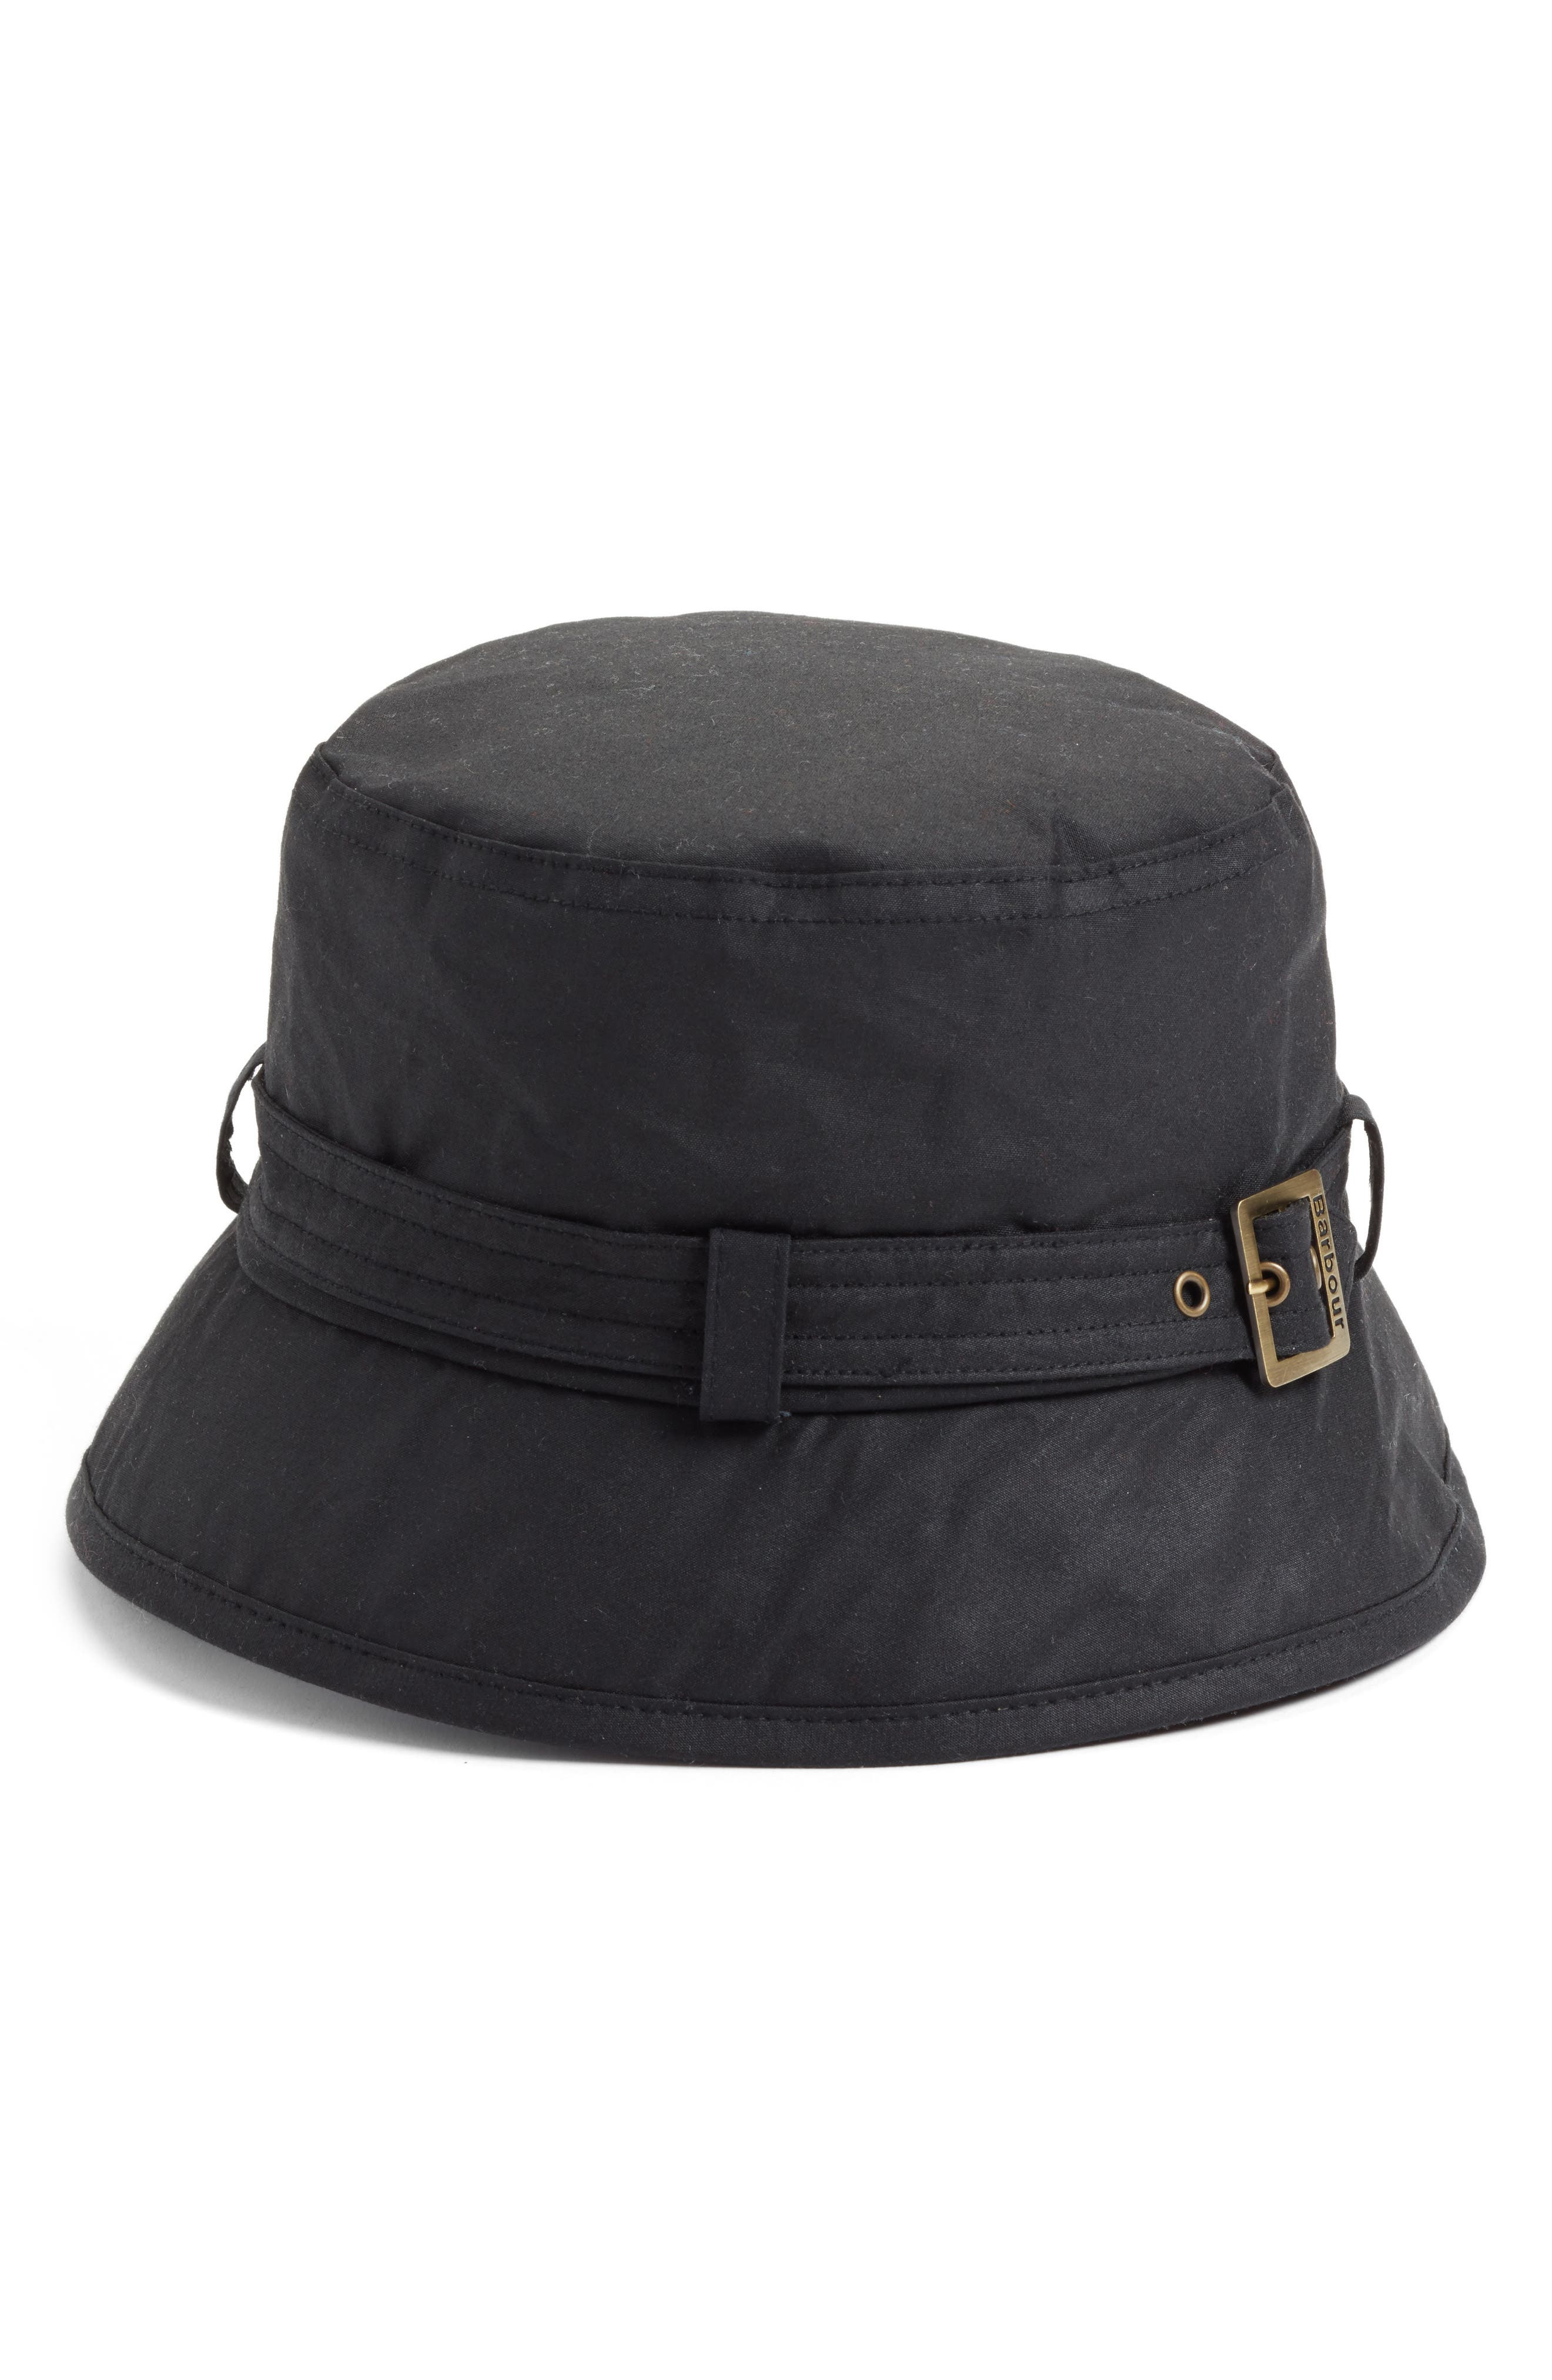 Kelso Bucket Hat,                             Main thumbnail 1, color,                             001